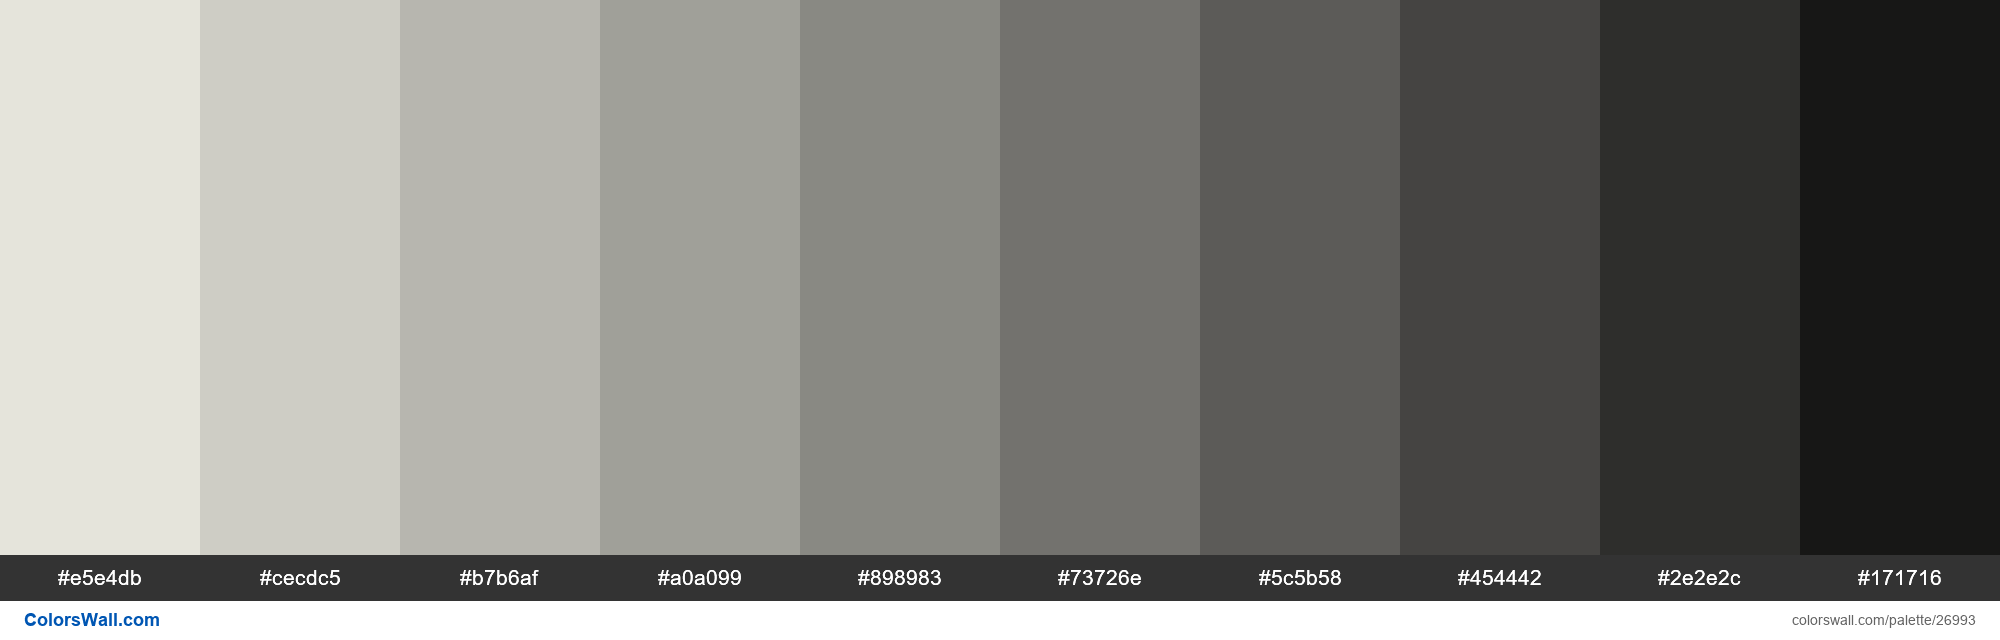 Shades of Black White color #E5E4DB hex - #26993